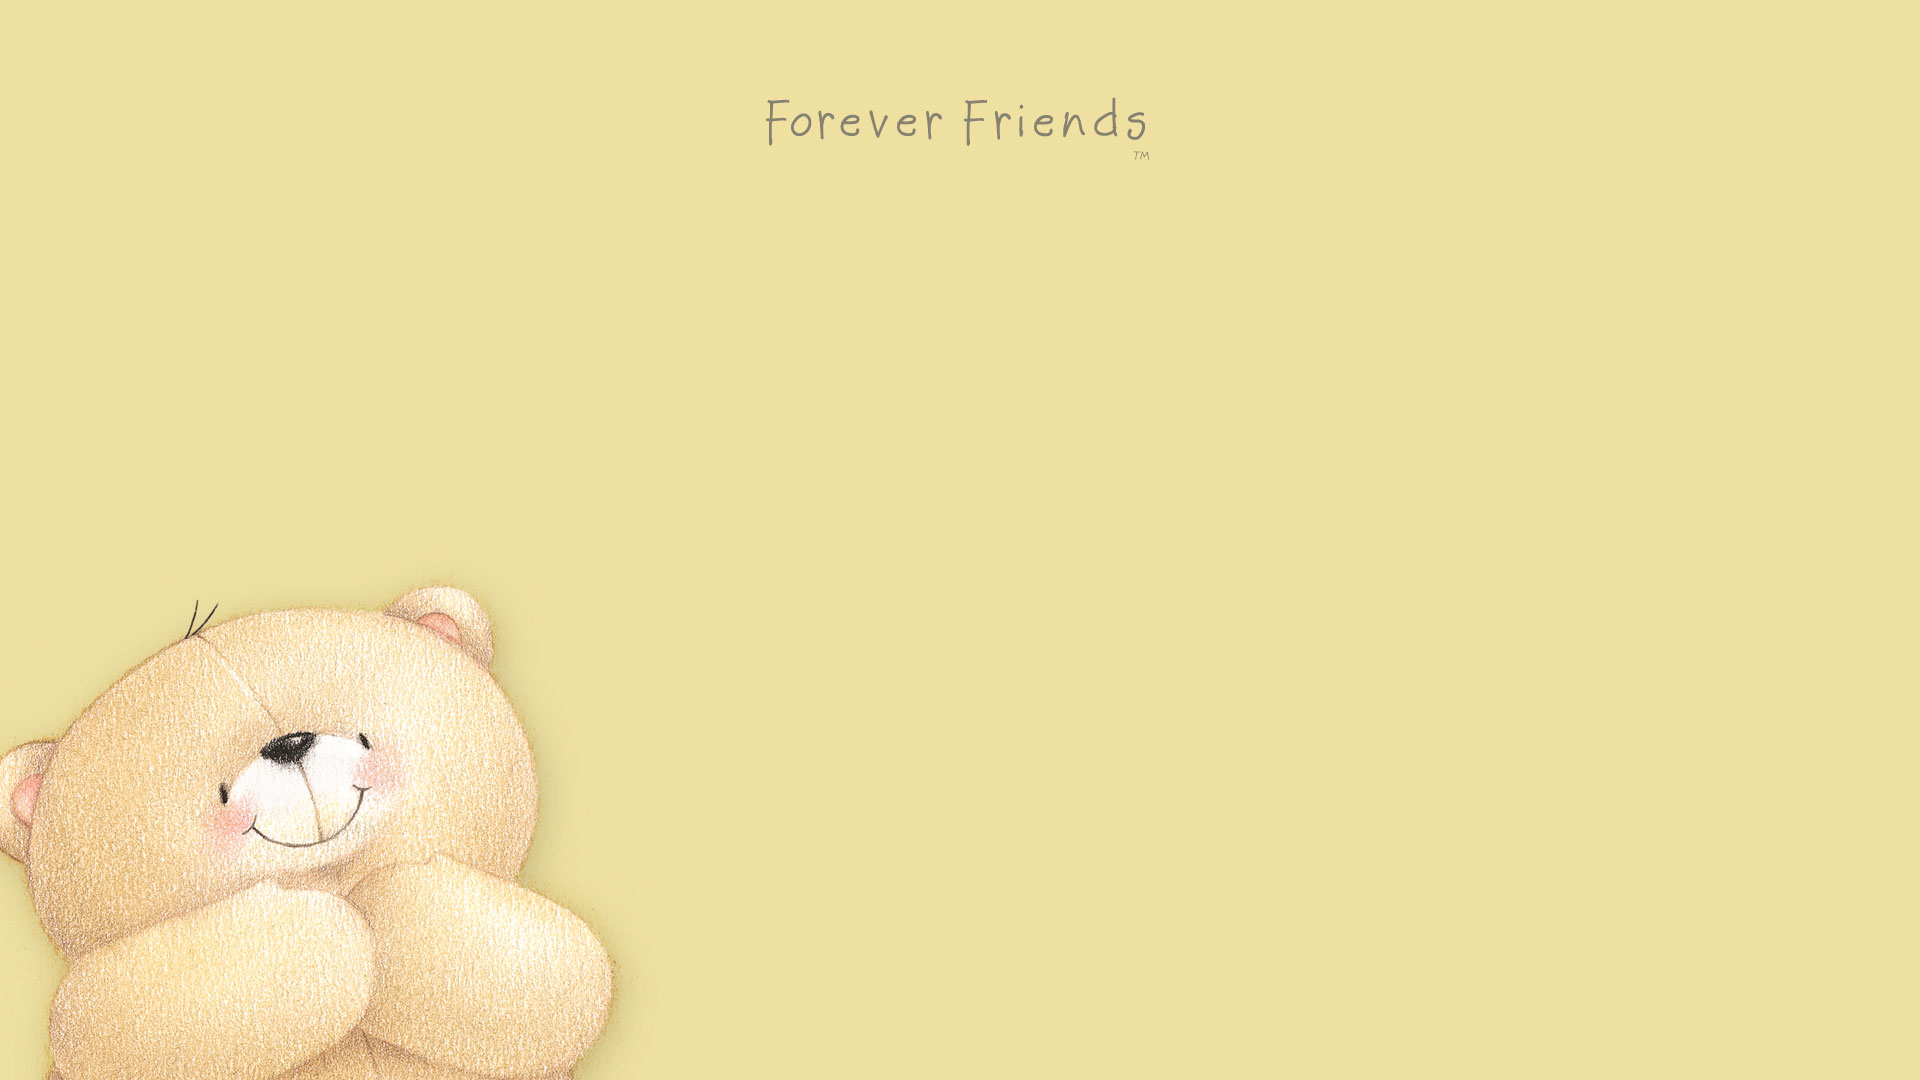 Forever Friends Wallpapers 1920x1080